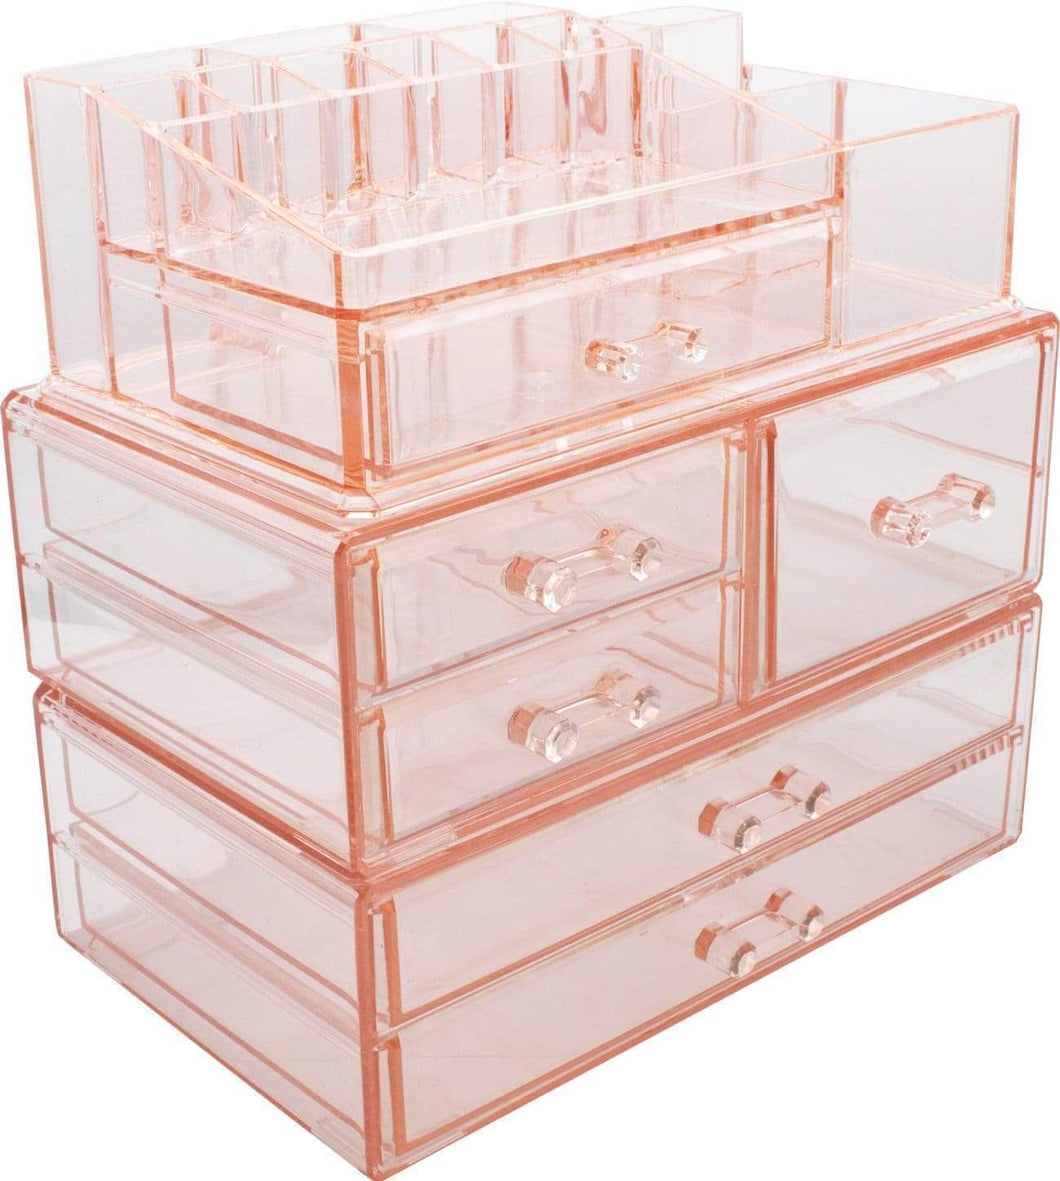 Select nice sorbus acrylic cosmetics makeup and jewelry storage case display sets interlocking drawers to create your own specially designed makeup counter stackable and interchangeable pink